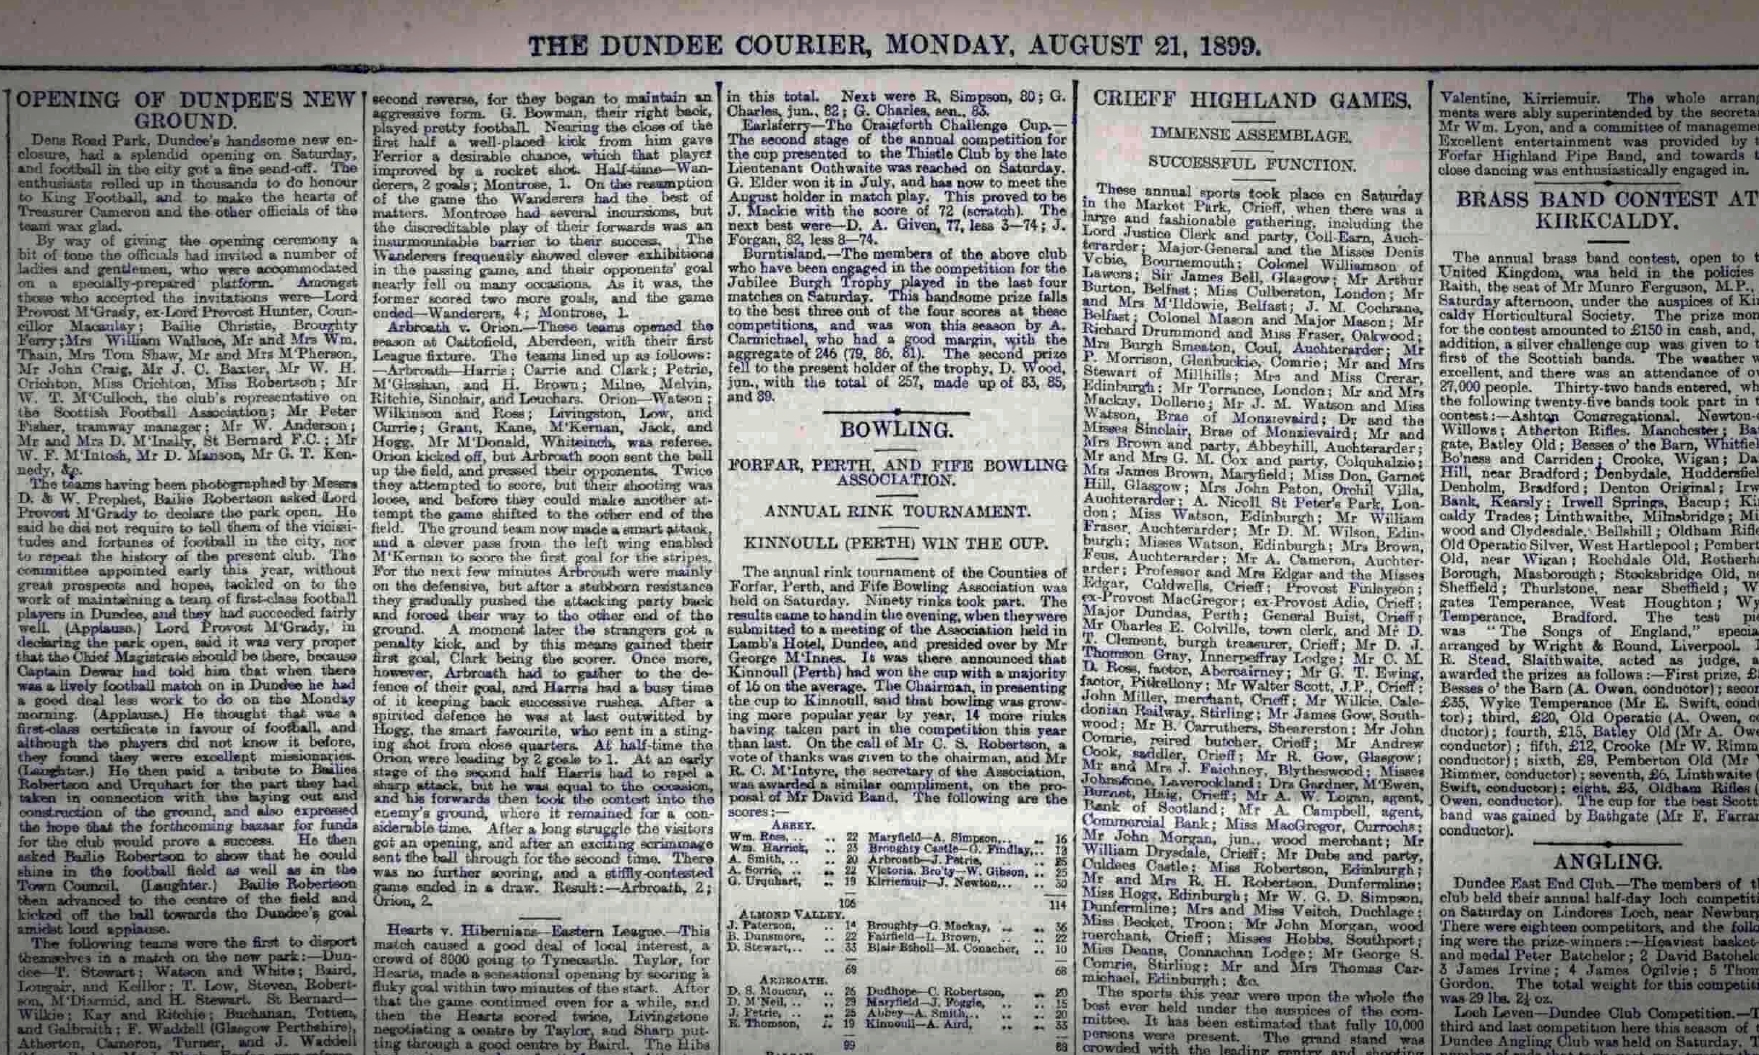 Dens Park's opening day is covered in the Courier on August 21 1899.